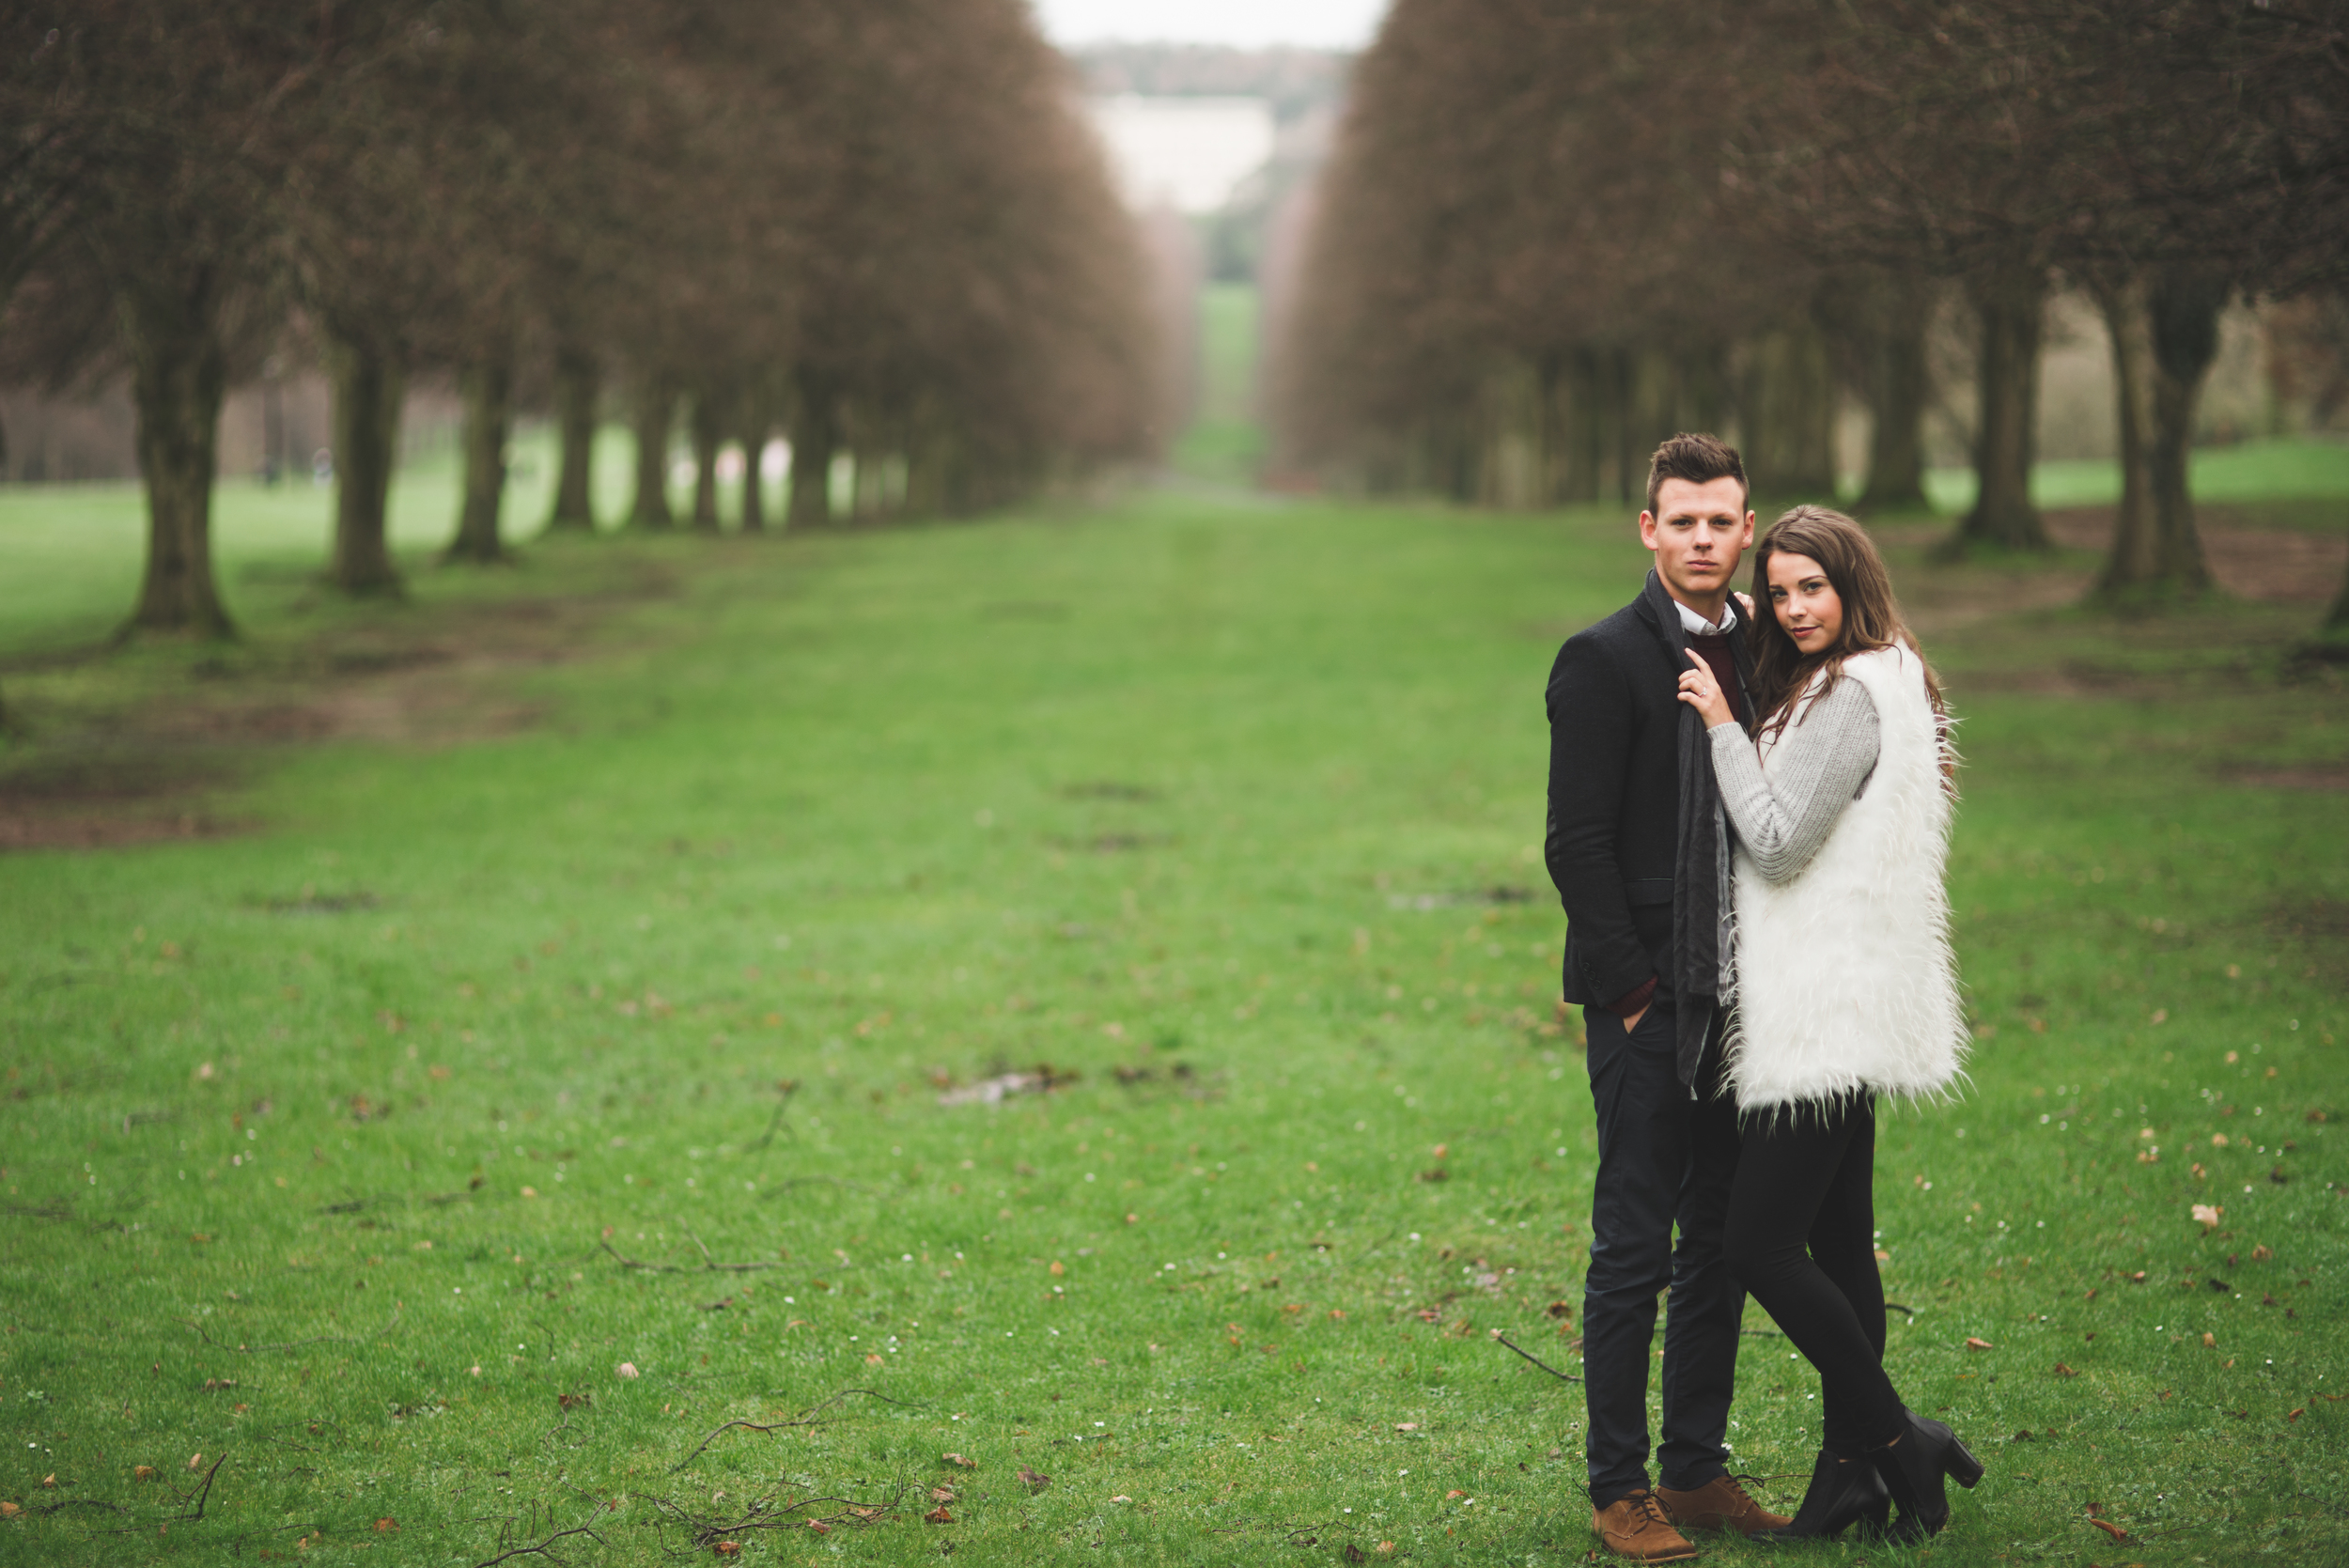 Hollie & James braved the chilly Belfast weather for theshoot. Click on the image to enlarge.